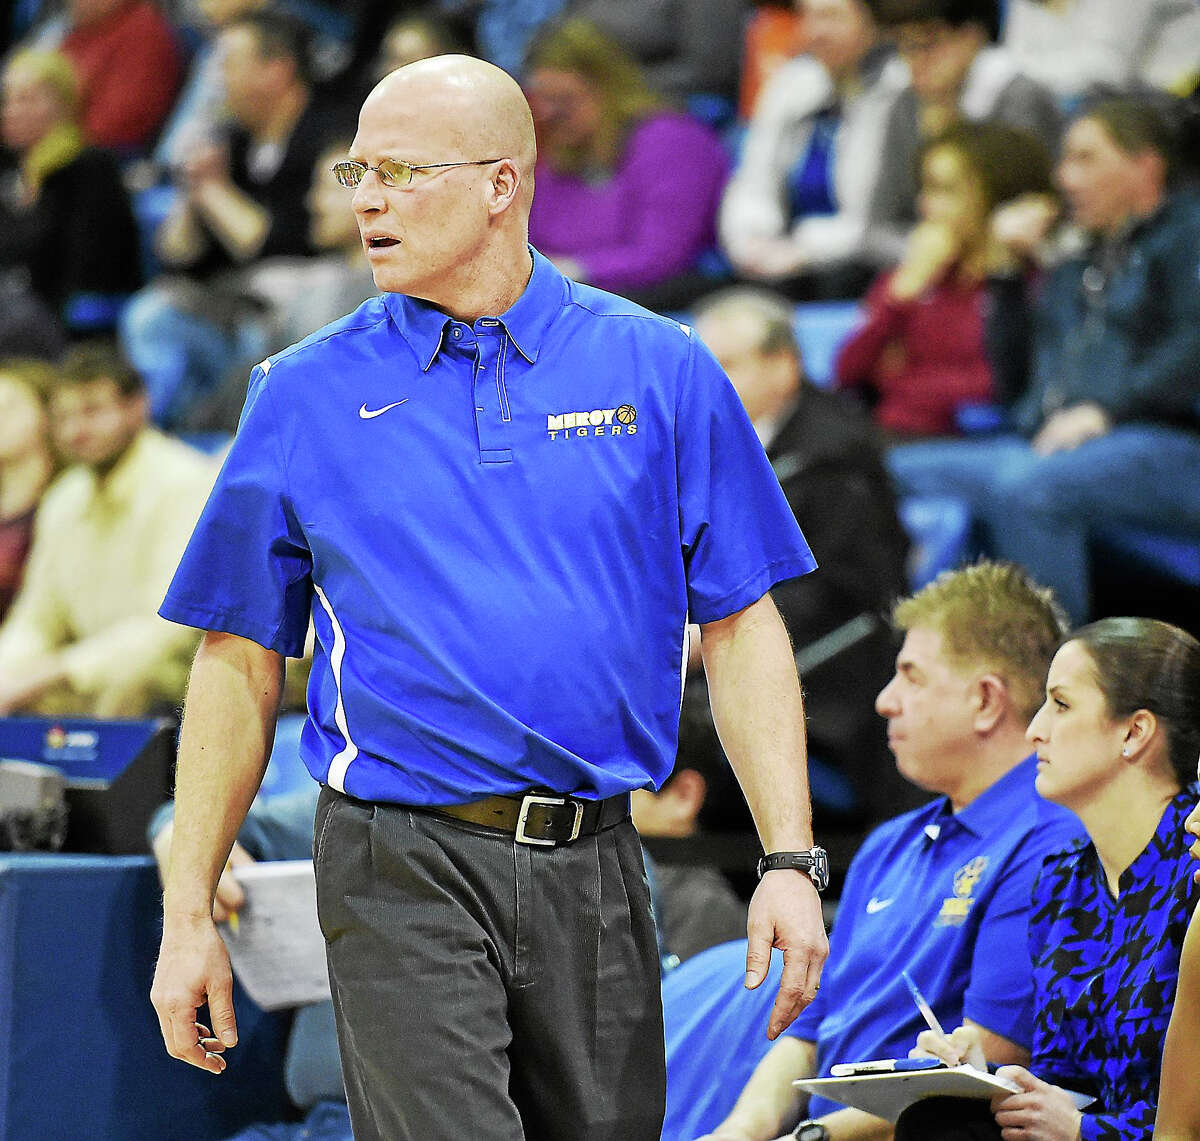 Mercy coach Tim Kohs will have the Tigers competing again for Southern Connecticut Conference and Class LL titles in 2015-16.